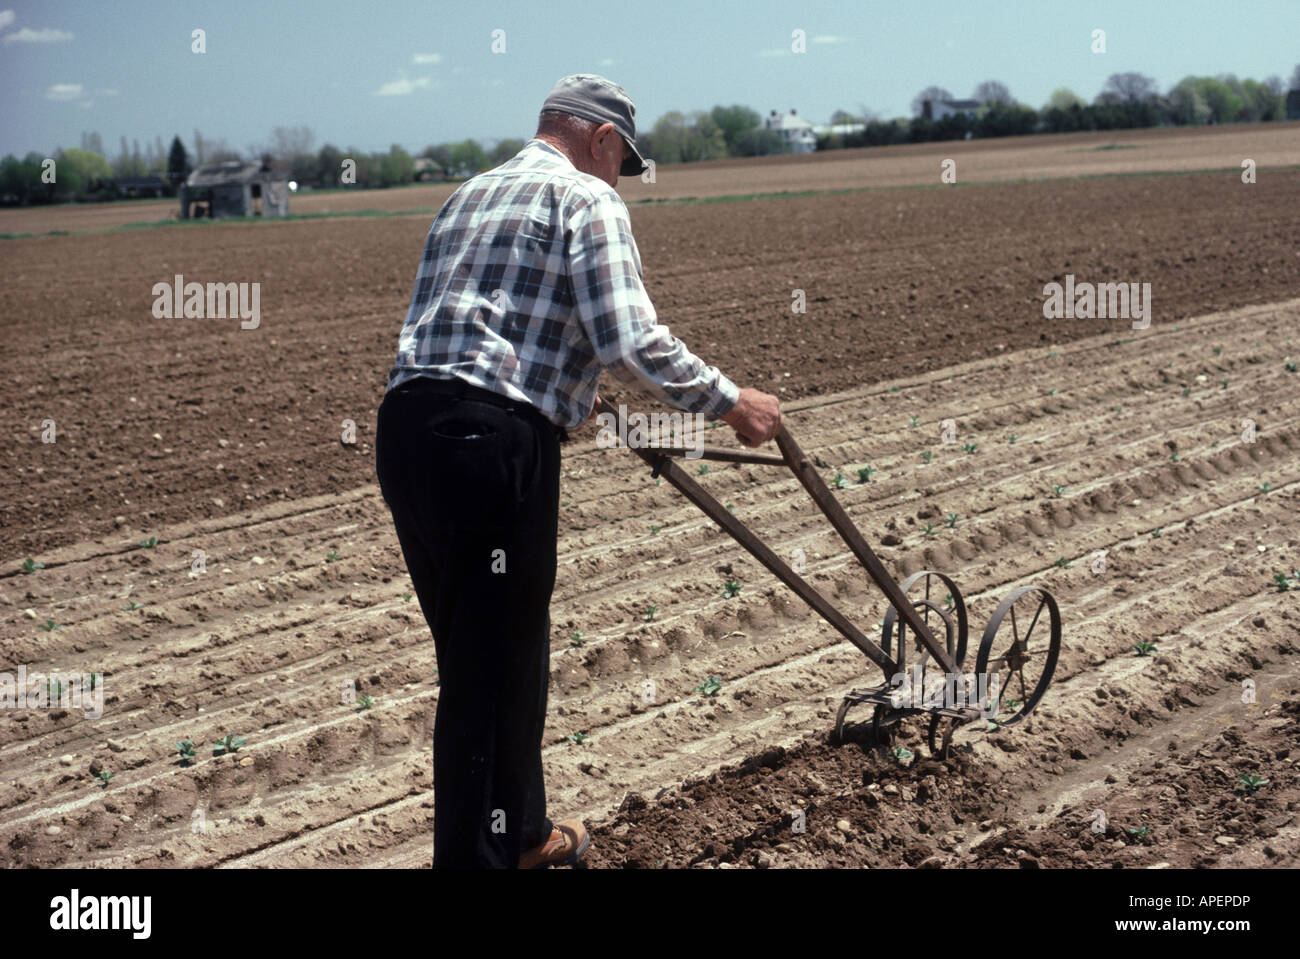 soil research paper International soil tillage research organization  of the journal of soil and tillage research:  not be included in a later paper.